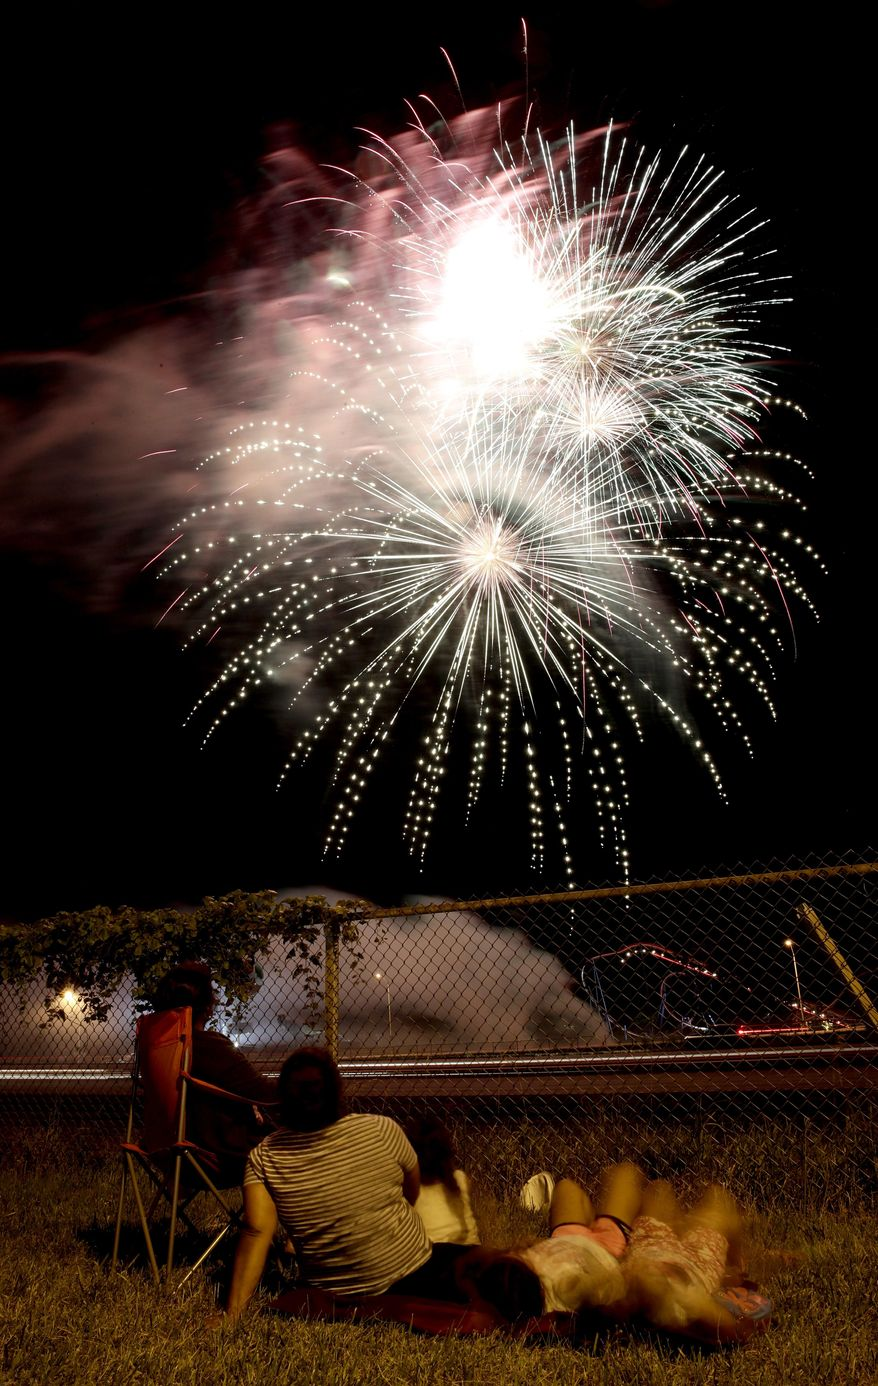 People watch a fireworks display for Independence Day at Worlds of Fun amusement park Monday, July 3, 2017, in Kansas City, Mo. (AP Photo/Charlie Riedel)